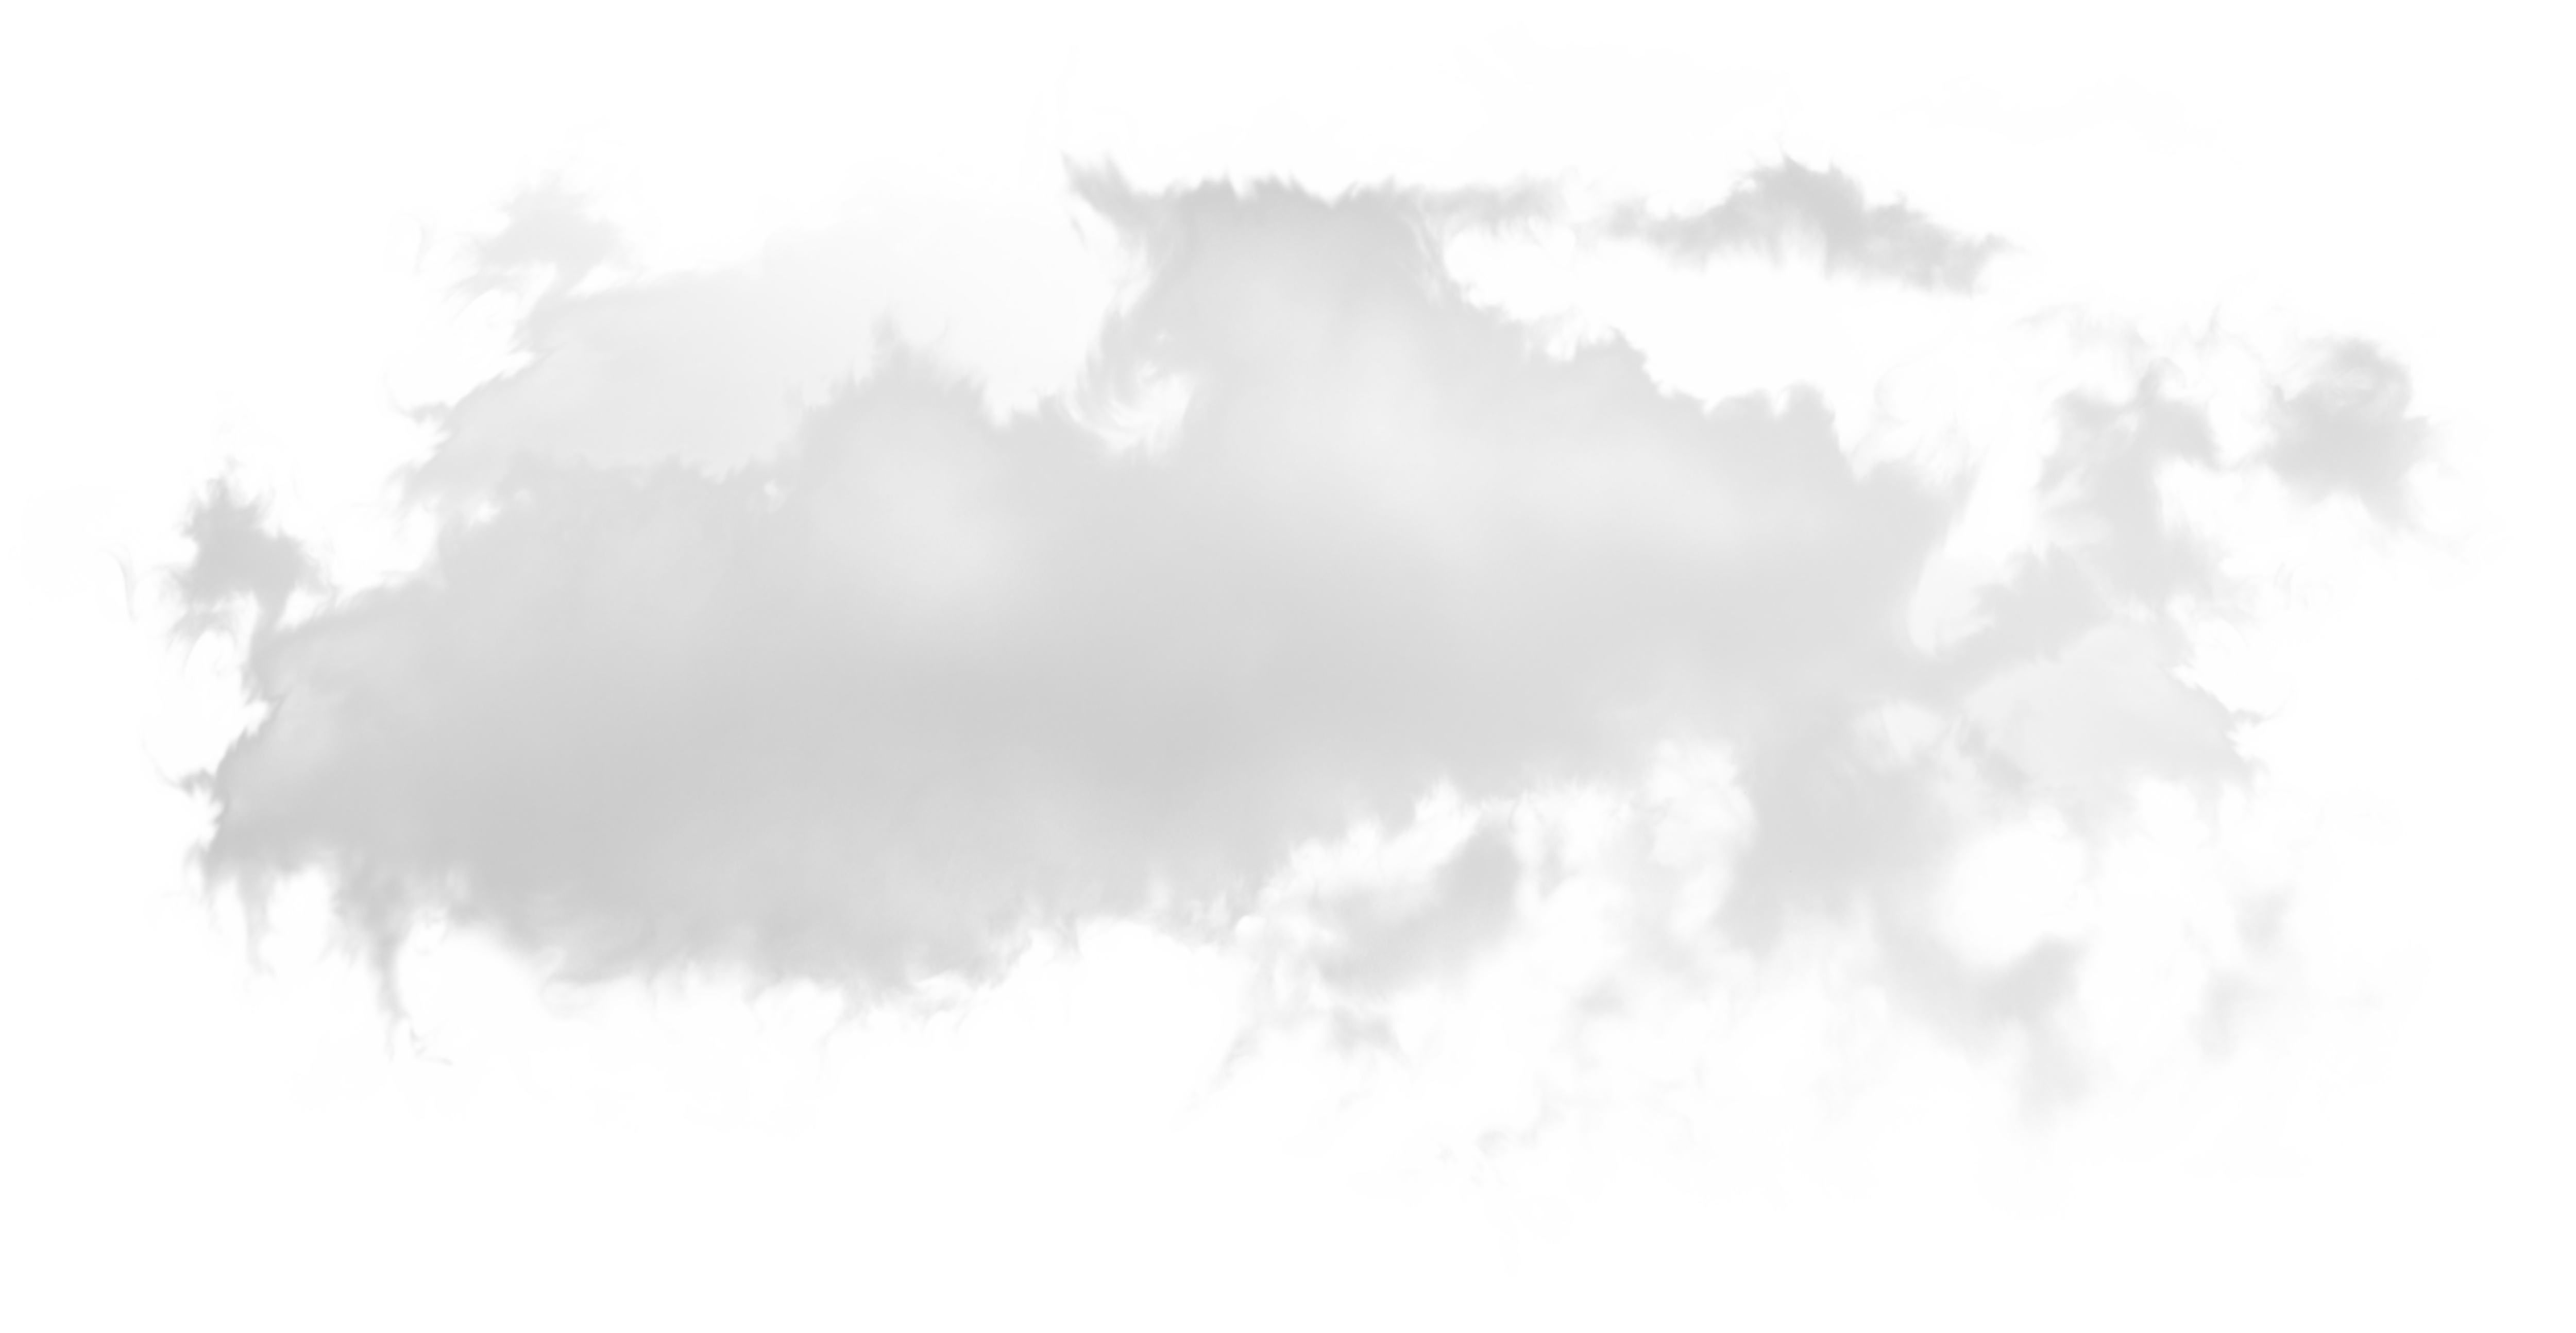 Clouds covering the sun clipart picture library download облака png: 20 тыс изображений найдено в Яндекс.Картинках | Облака ... picture library download